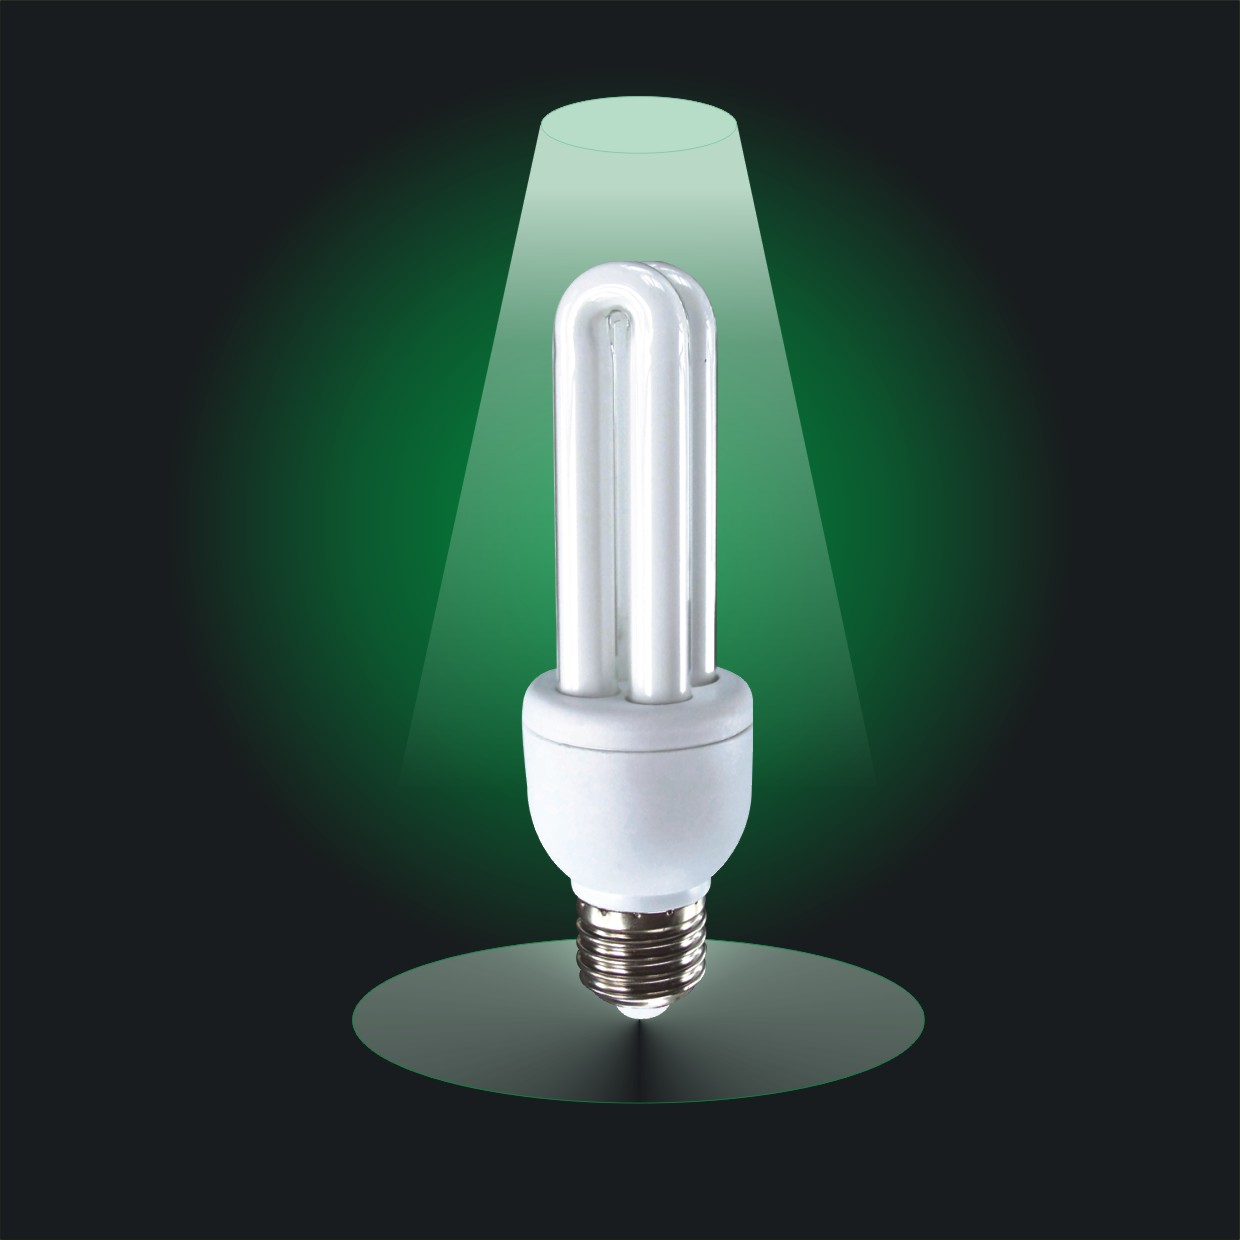 Cfl Bulbs Cfl Light Bulb Facts Decoratingspecial